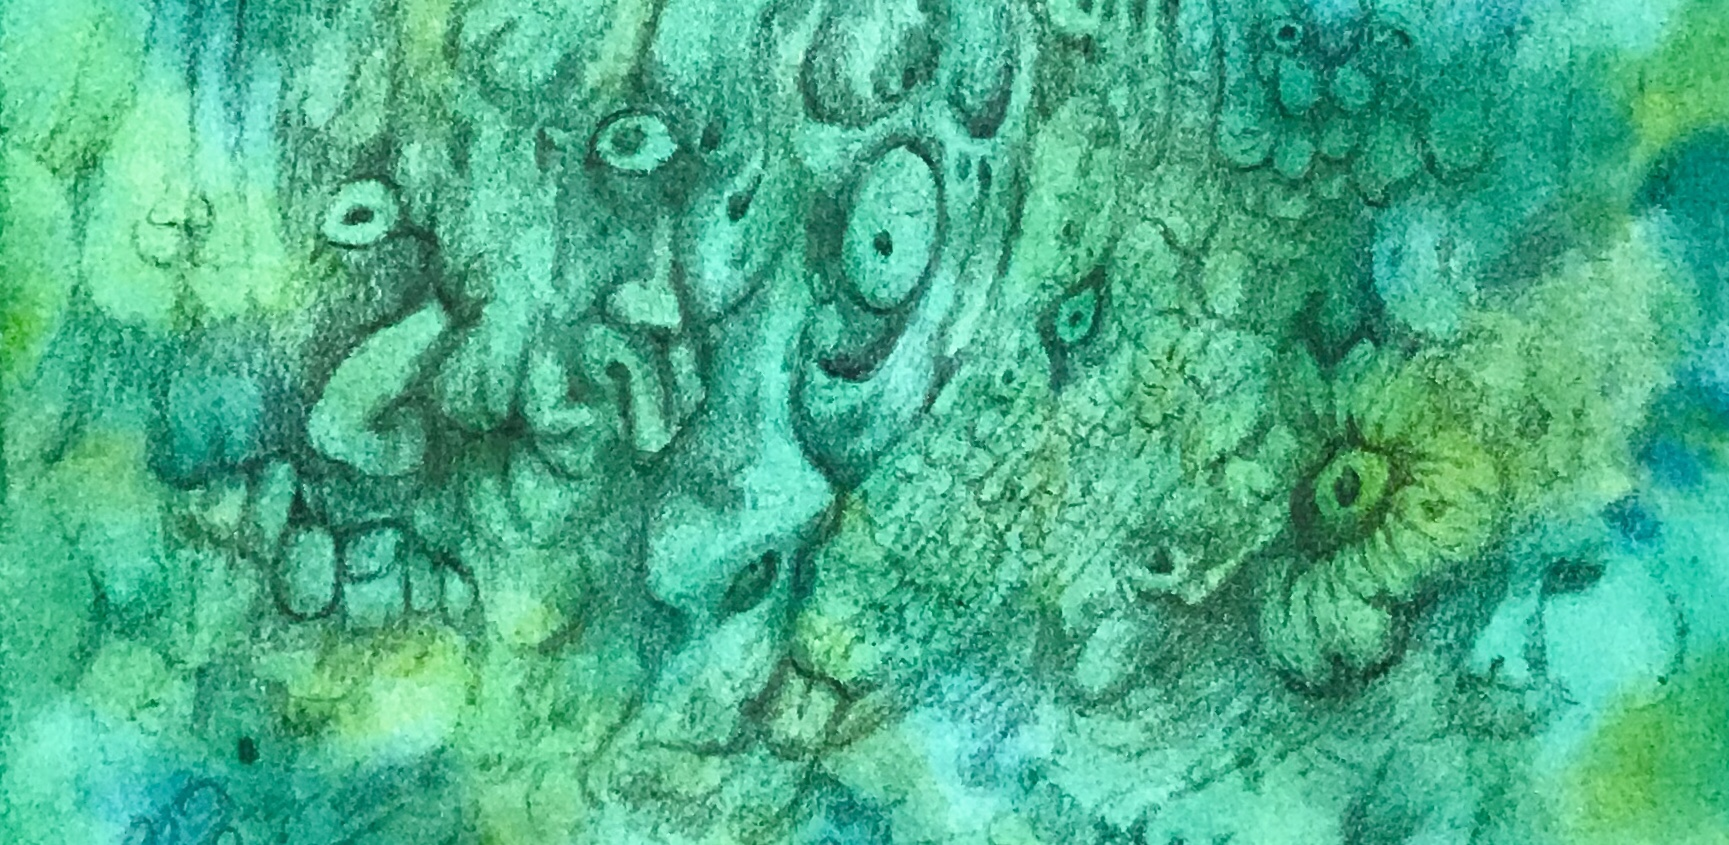 Detail of a free association drawing over an abstract watercolor painting by MJ Seal